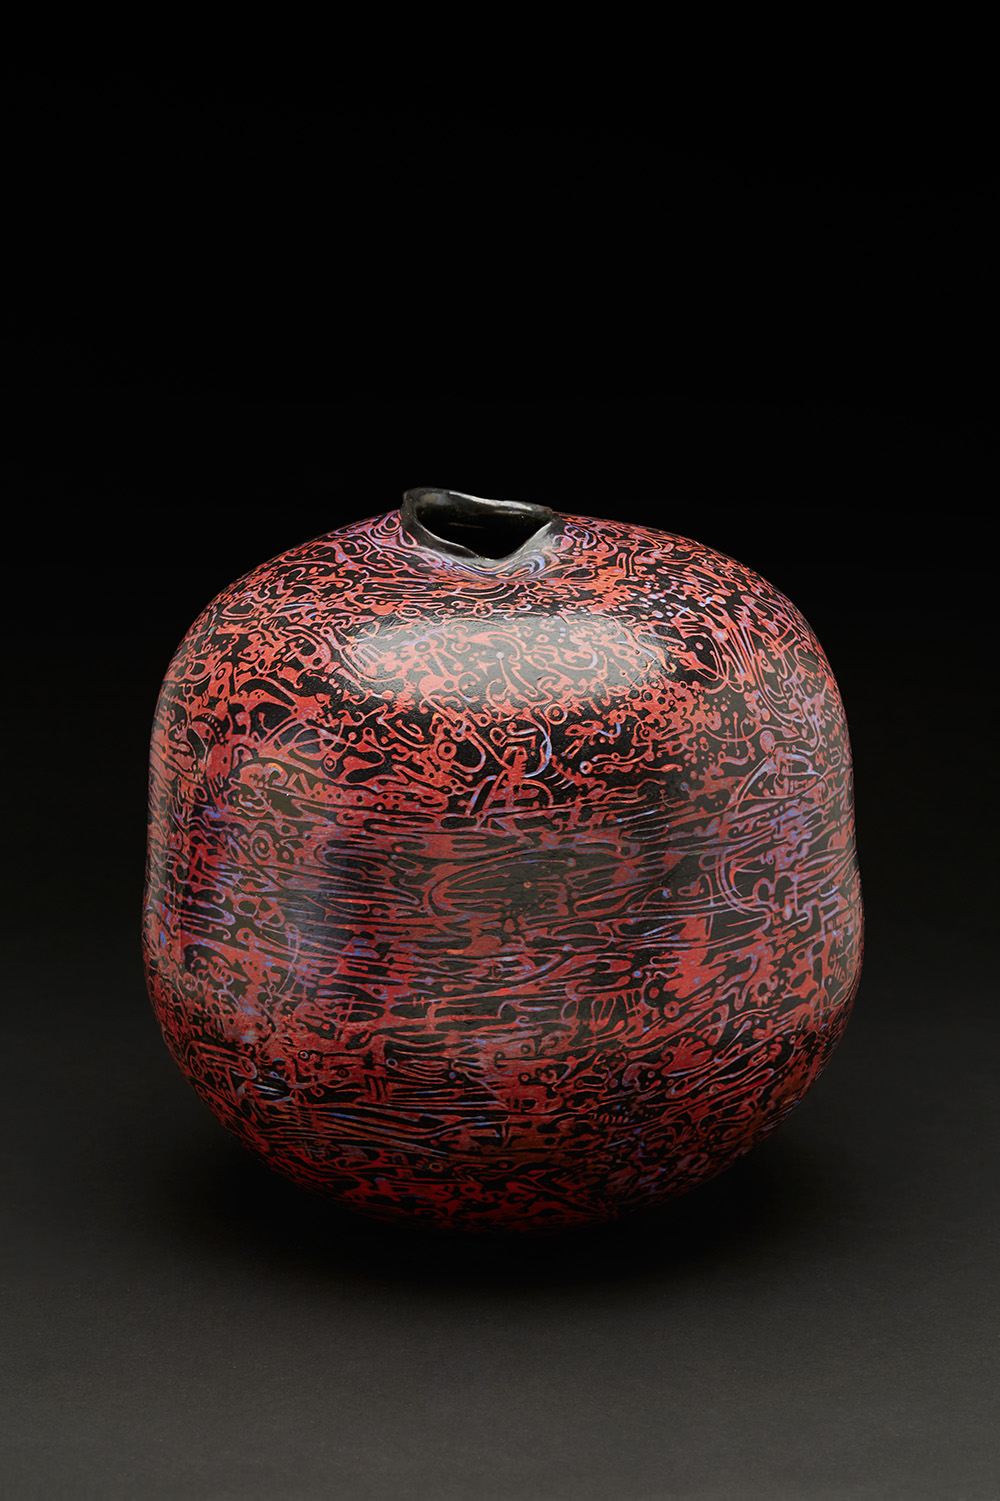 Melanie Ferguson  Crimson Light Floods the Horizon  , 2016 Hand built stoneware, sgraffito, underglaze, manganese inner glaze; hand-rubbed coldwax finish 11 x 11 x 11 inches 27.9 x 27.9 x 27.9 cm MFe 41